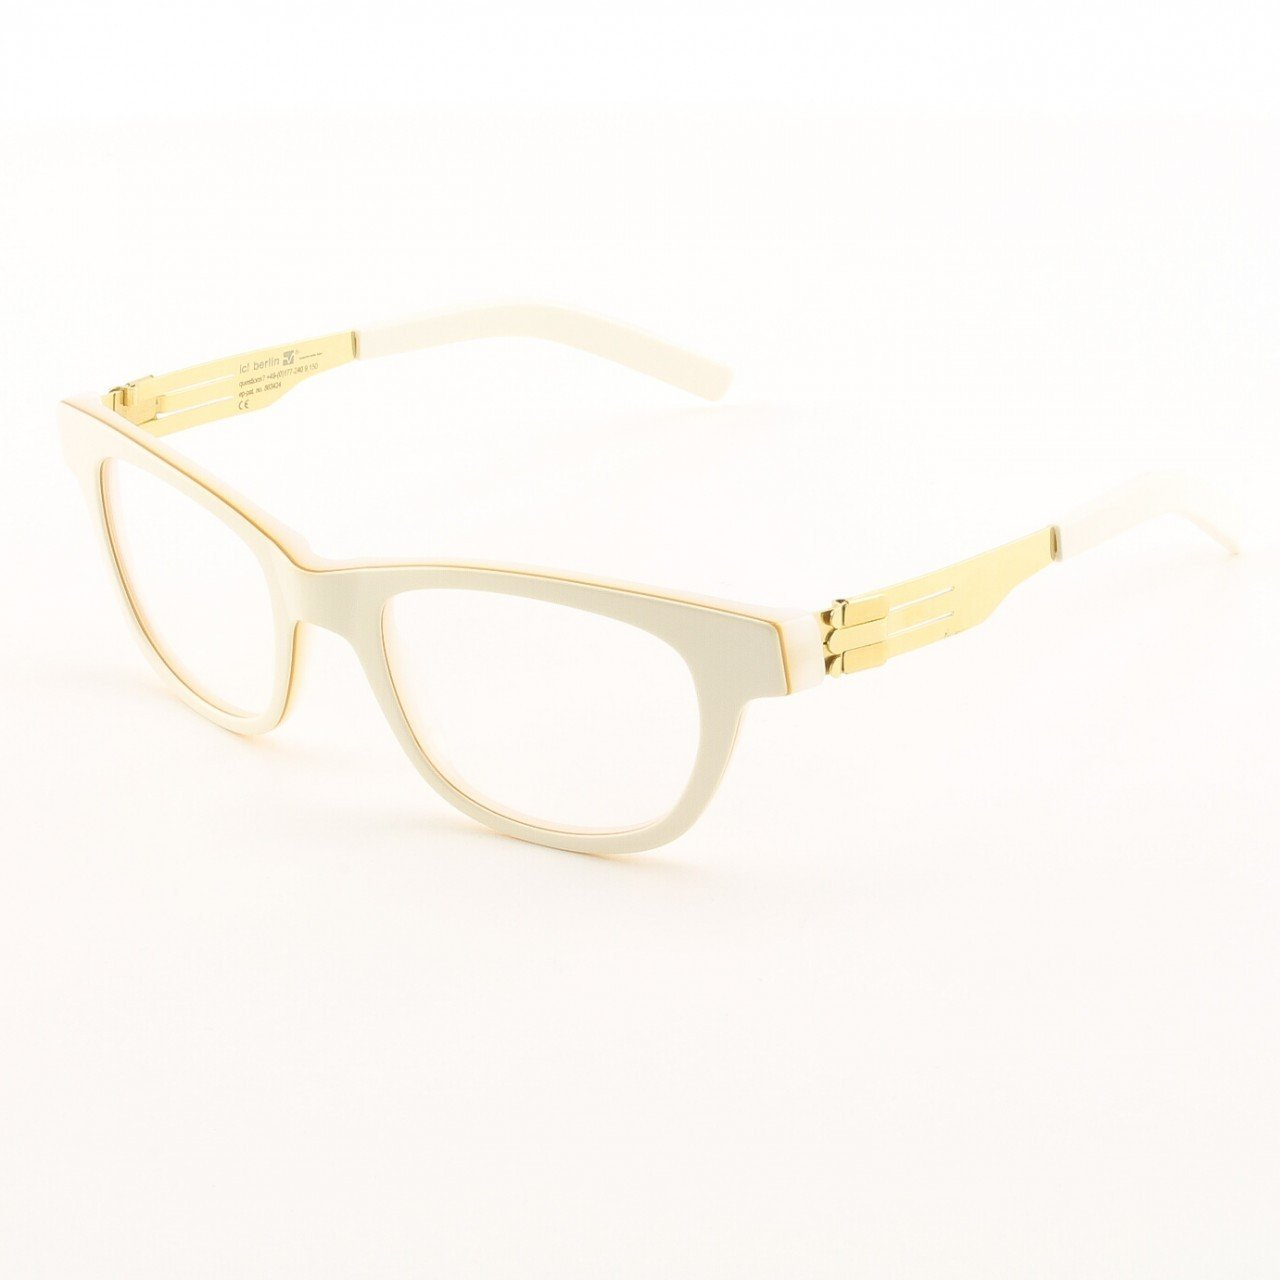 ic! Berlin Claudia S. Eyeglasses Col. Ivory / Gold Trim with Clear Lenses